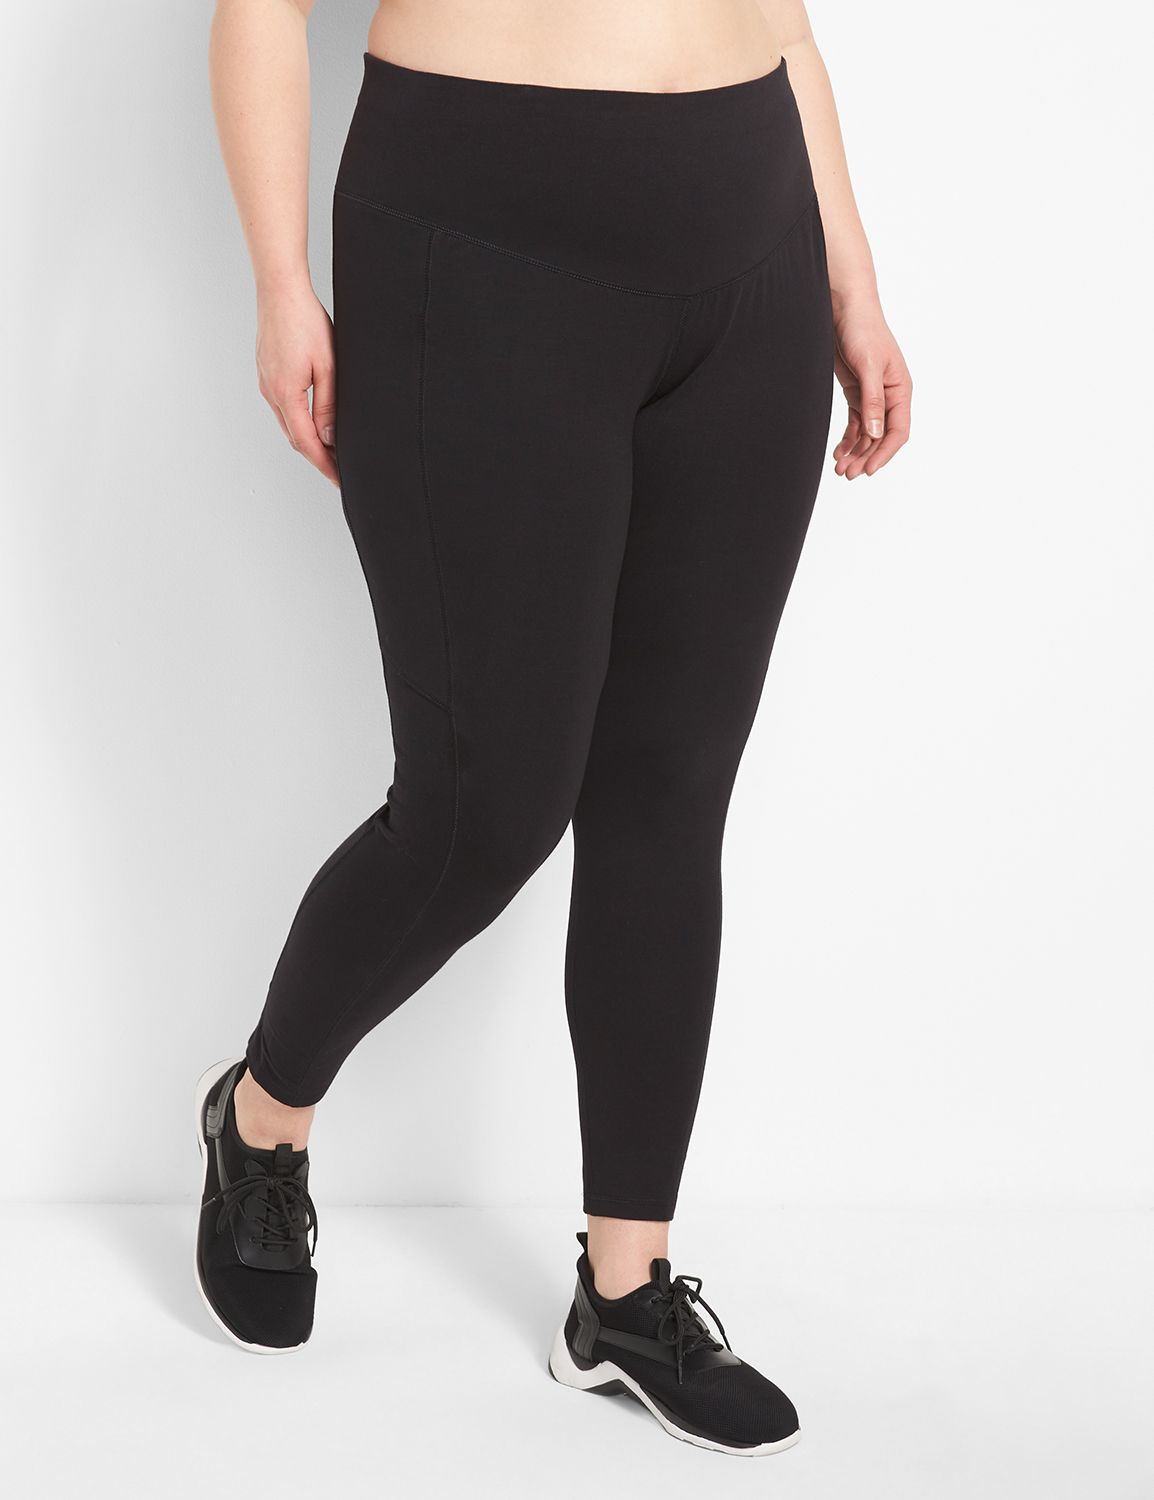 Lane Bryant Womens Control Tech Smoothing Active Legging 18/20 Pitch Black